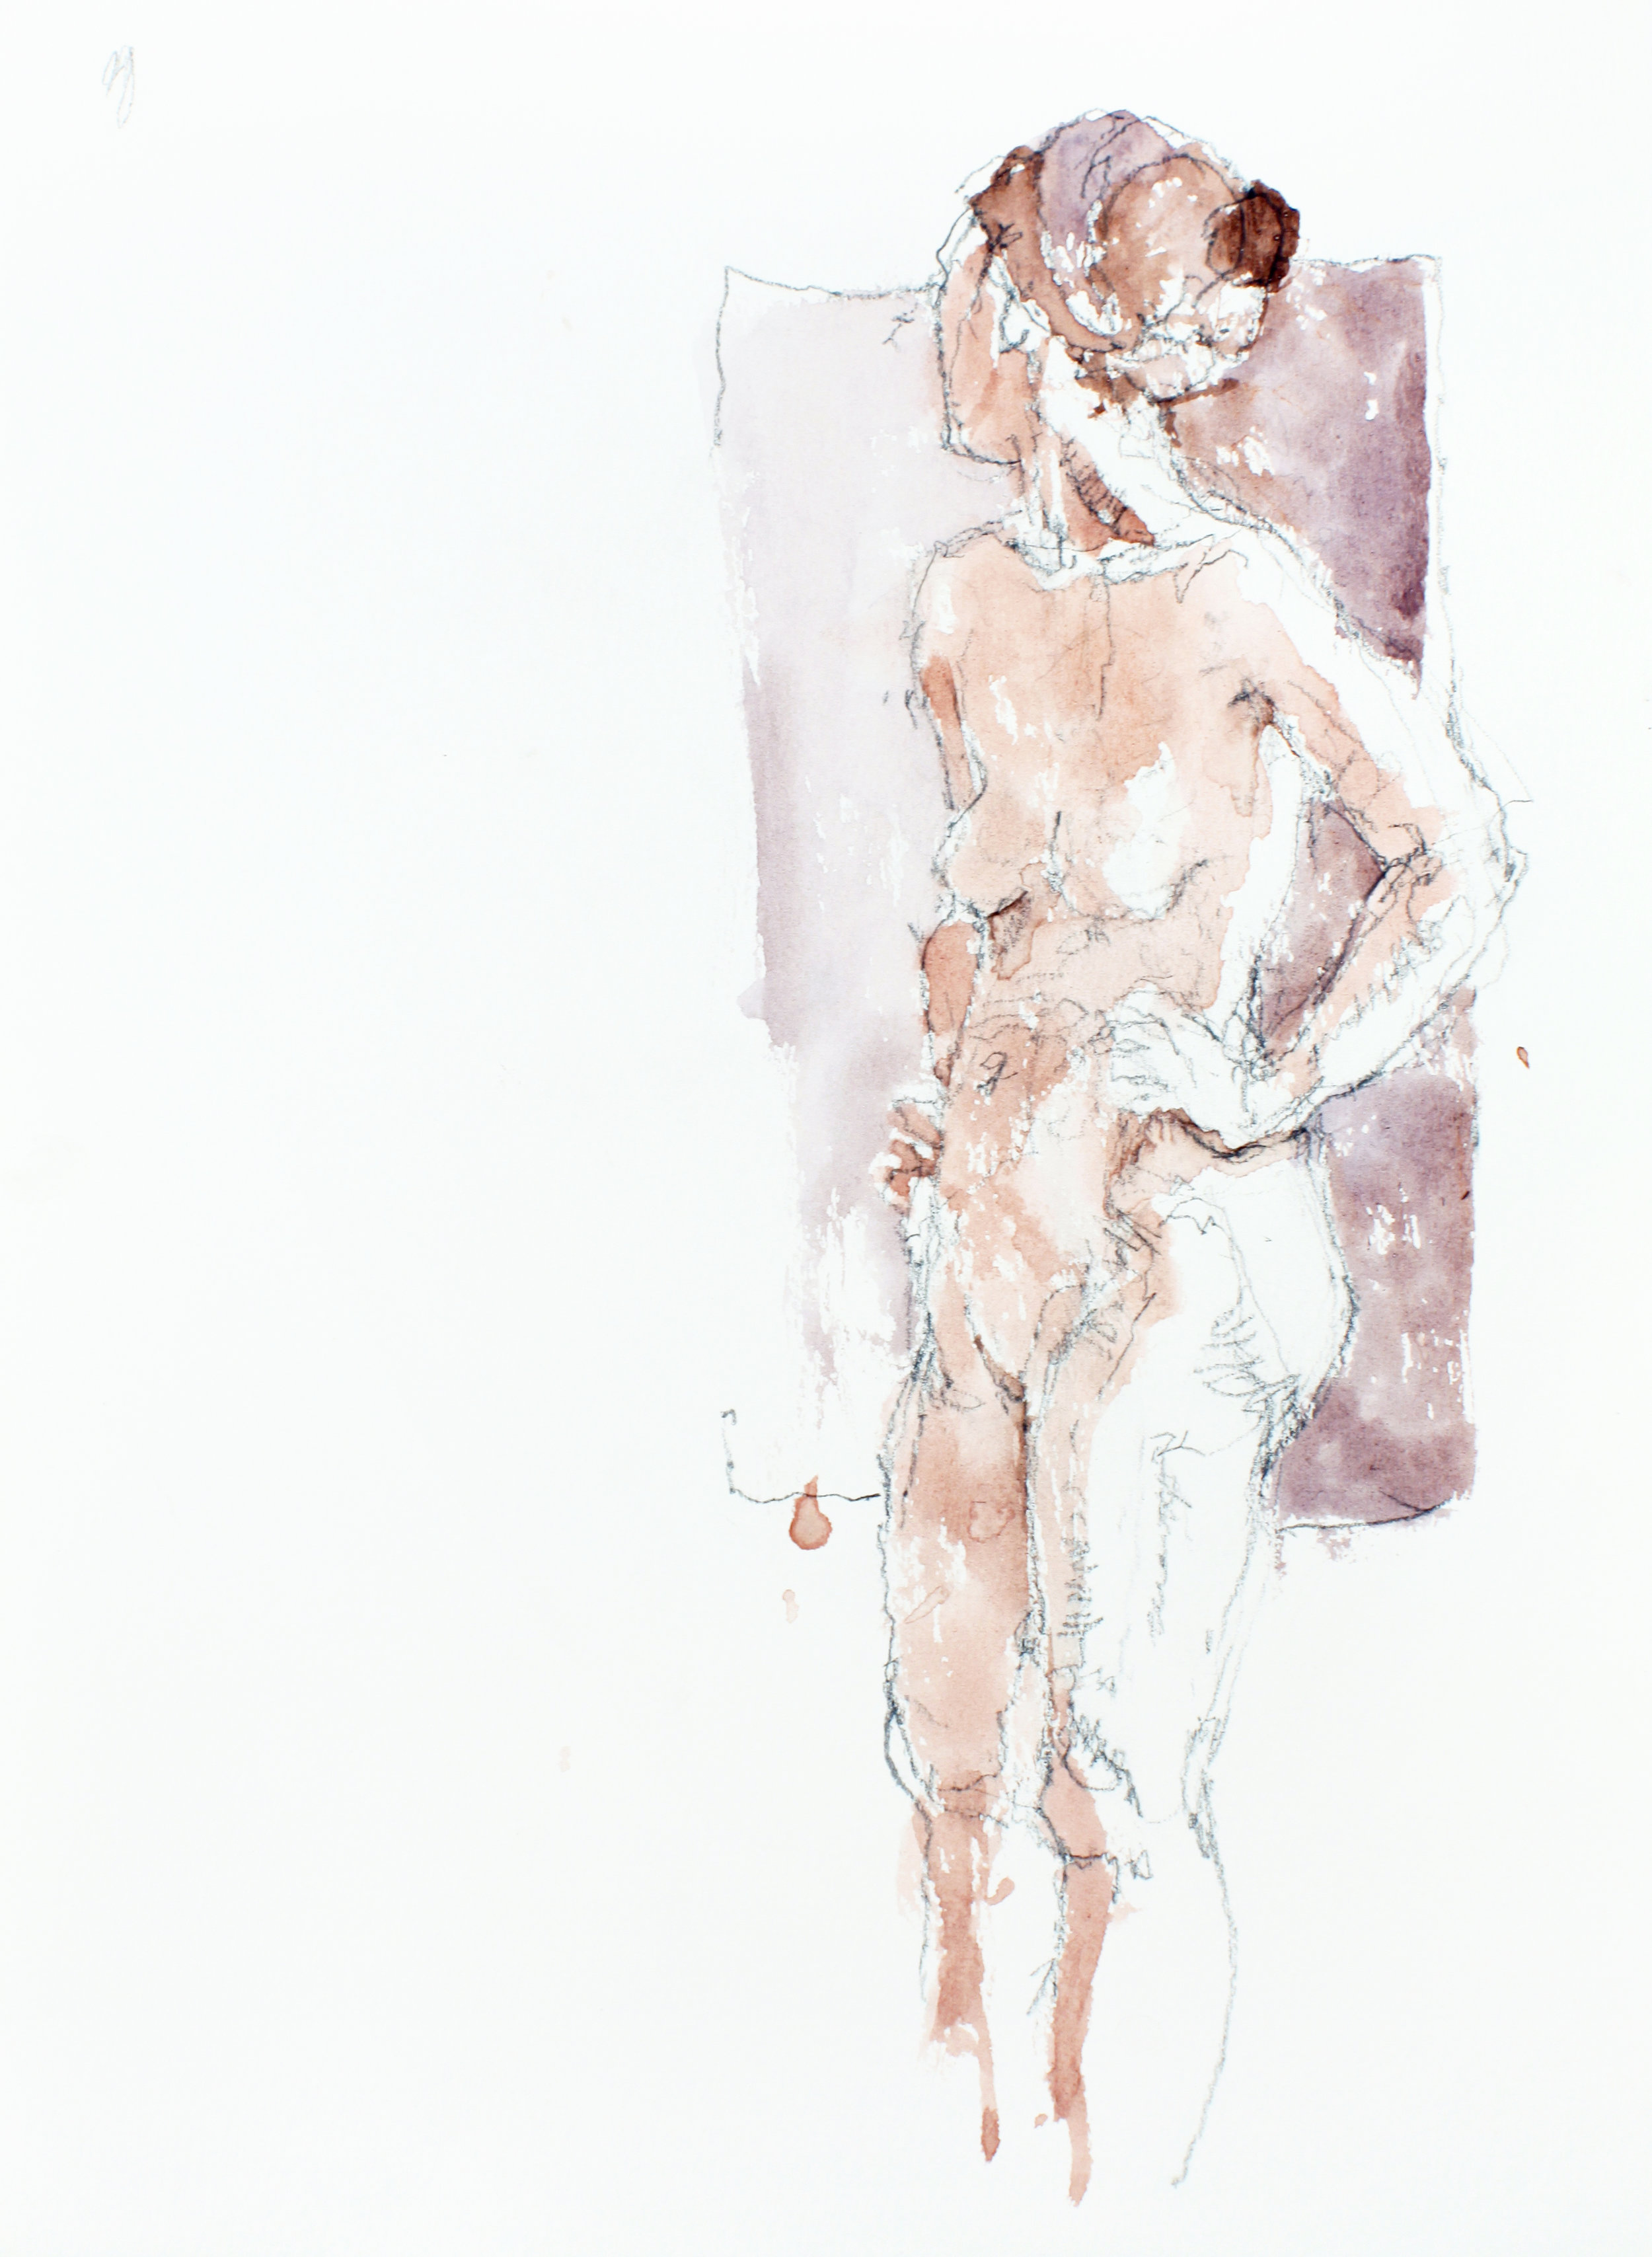 2007_watercolour_and_pencil_on_paper_15x11in_38x28cm_WPF121.jpg